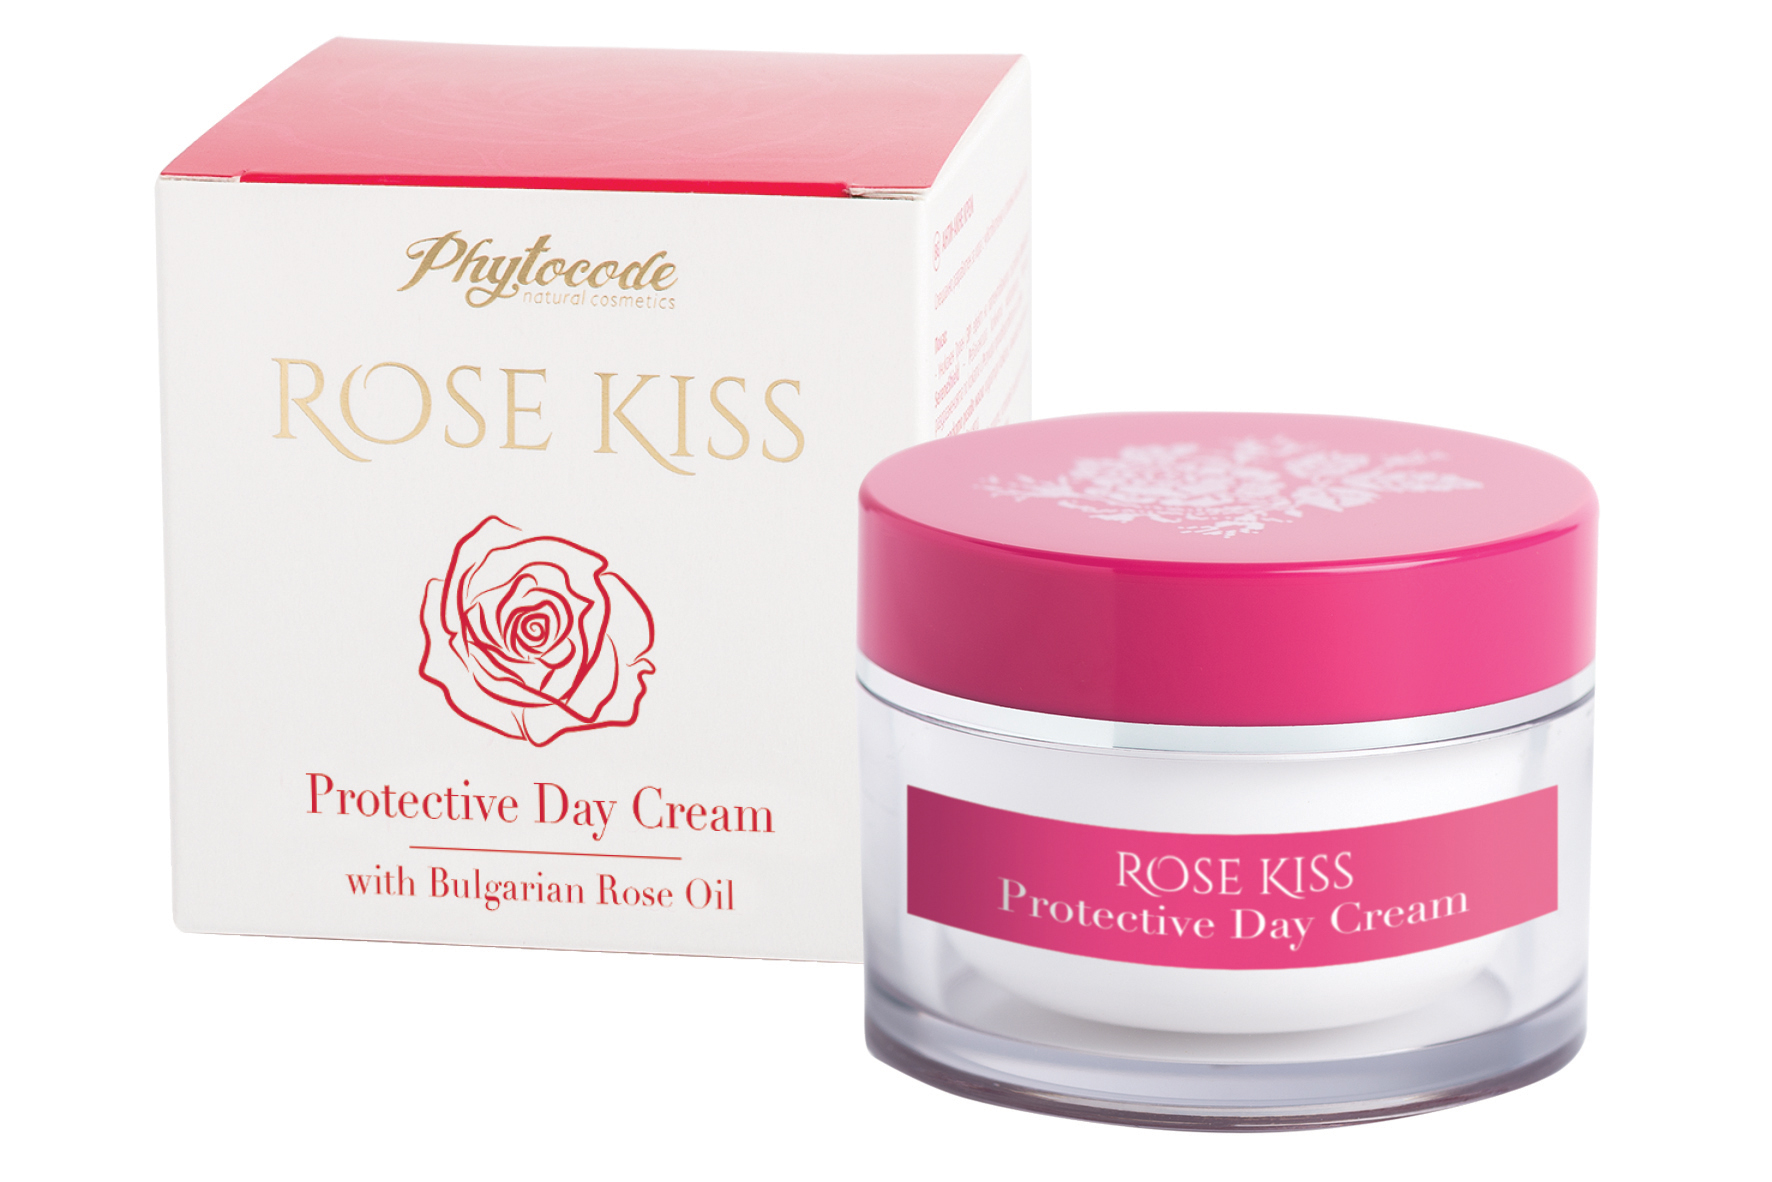 Phytocode Rose Kiss Protective Day Cream